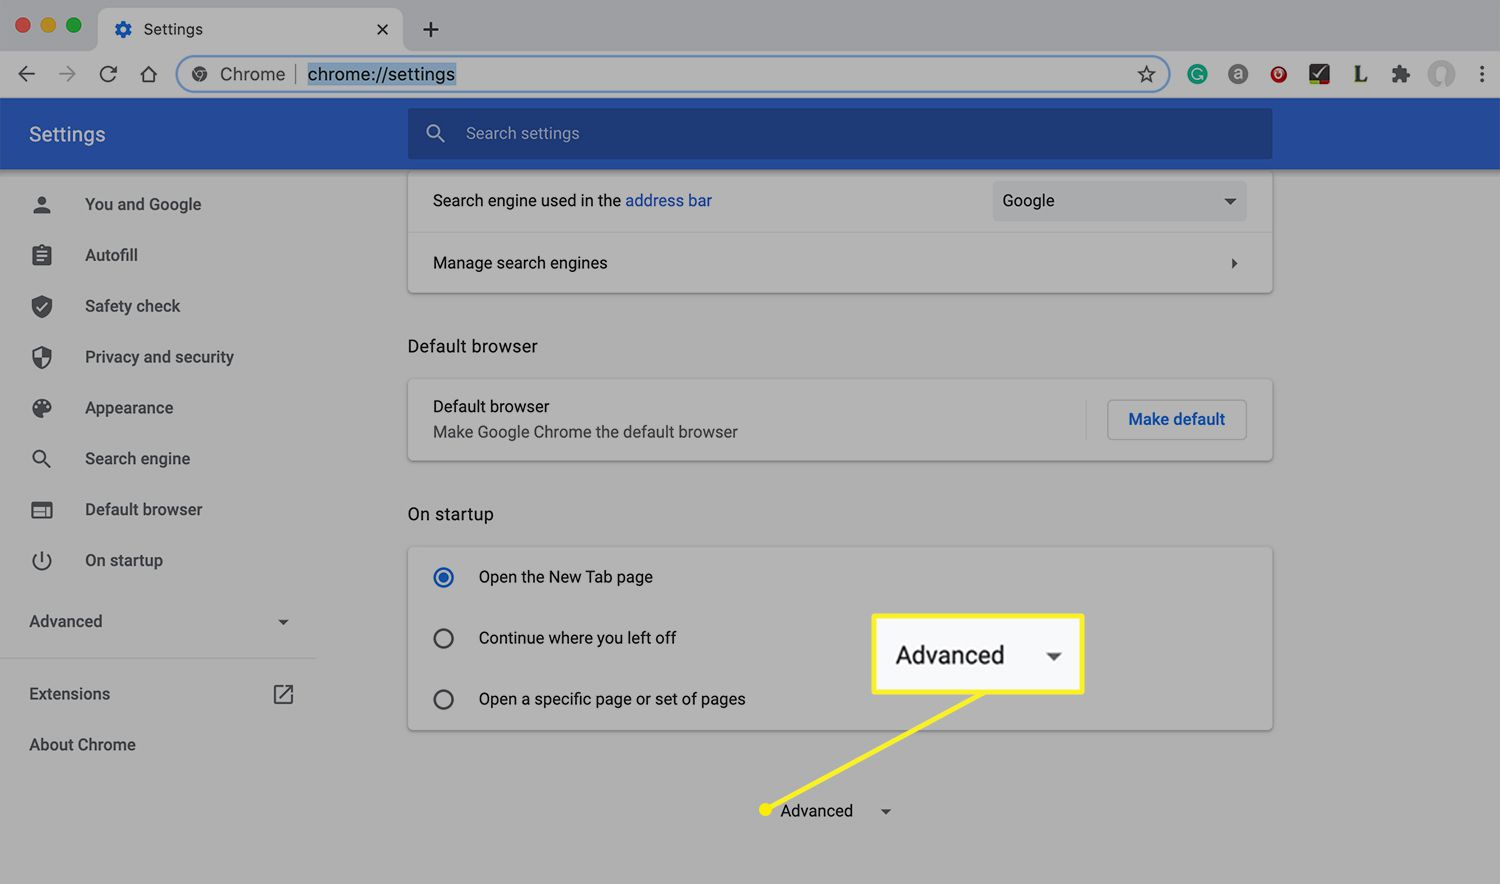 Chrome settings with Advanced highlighted